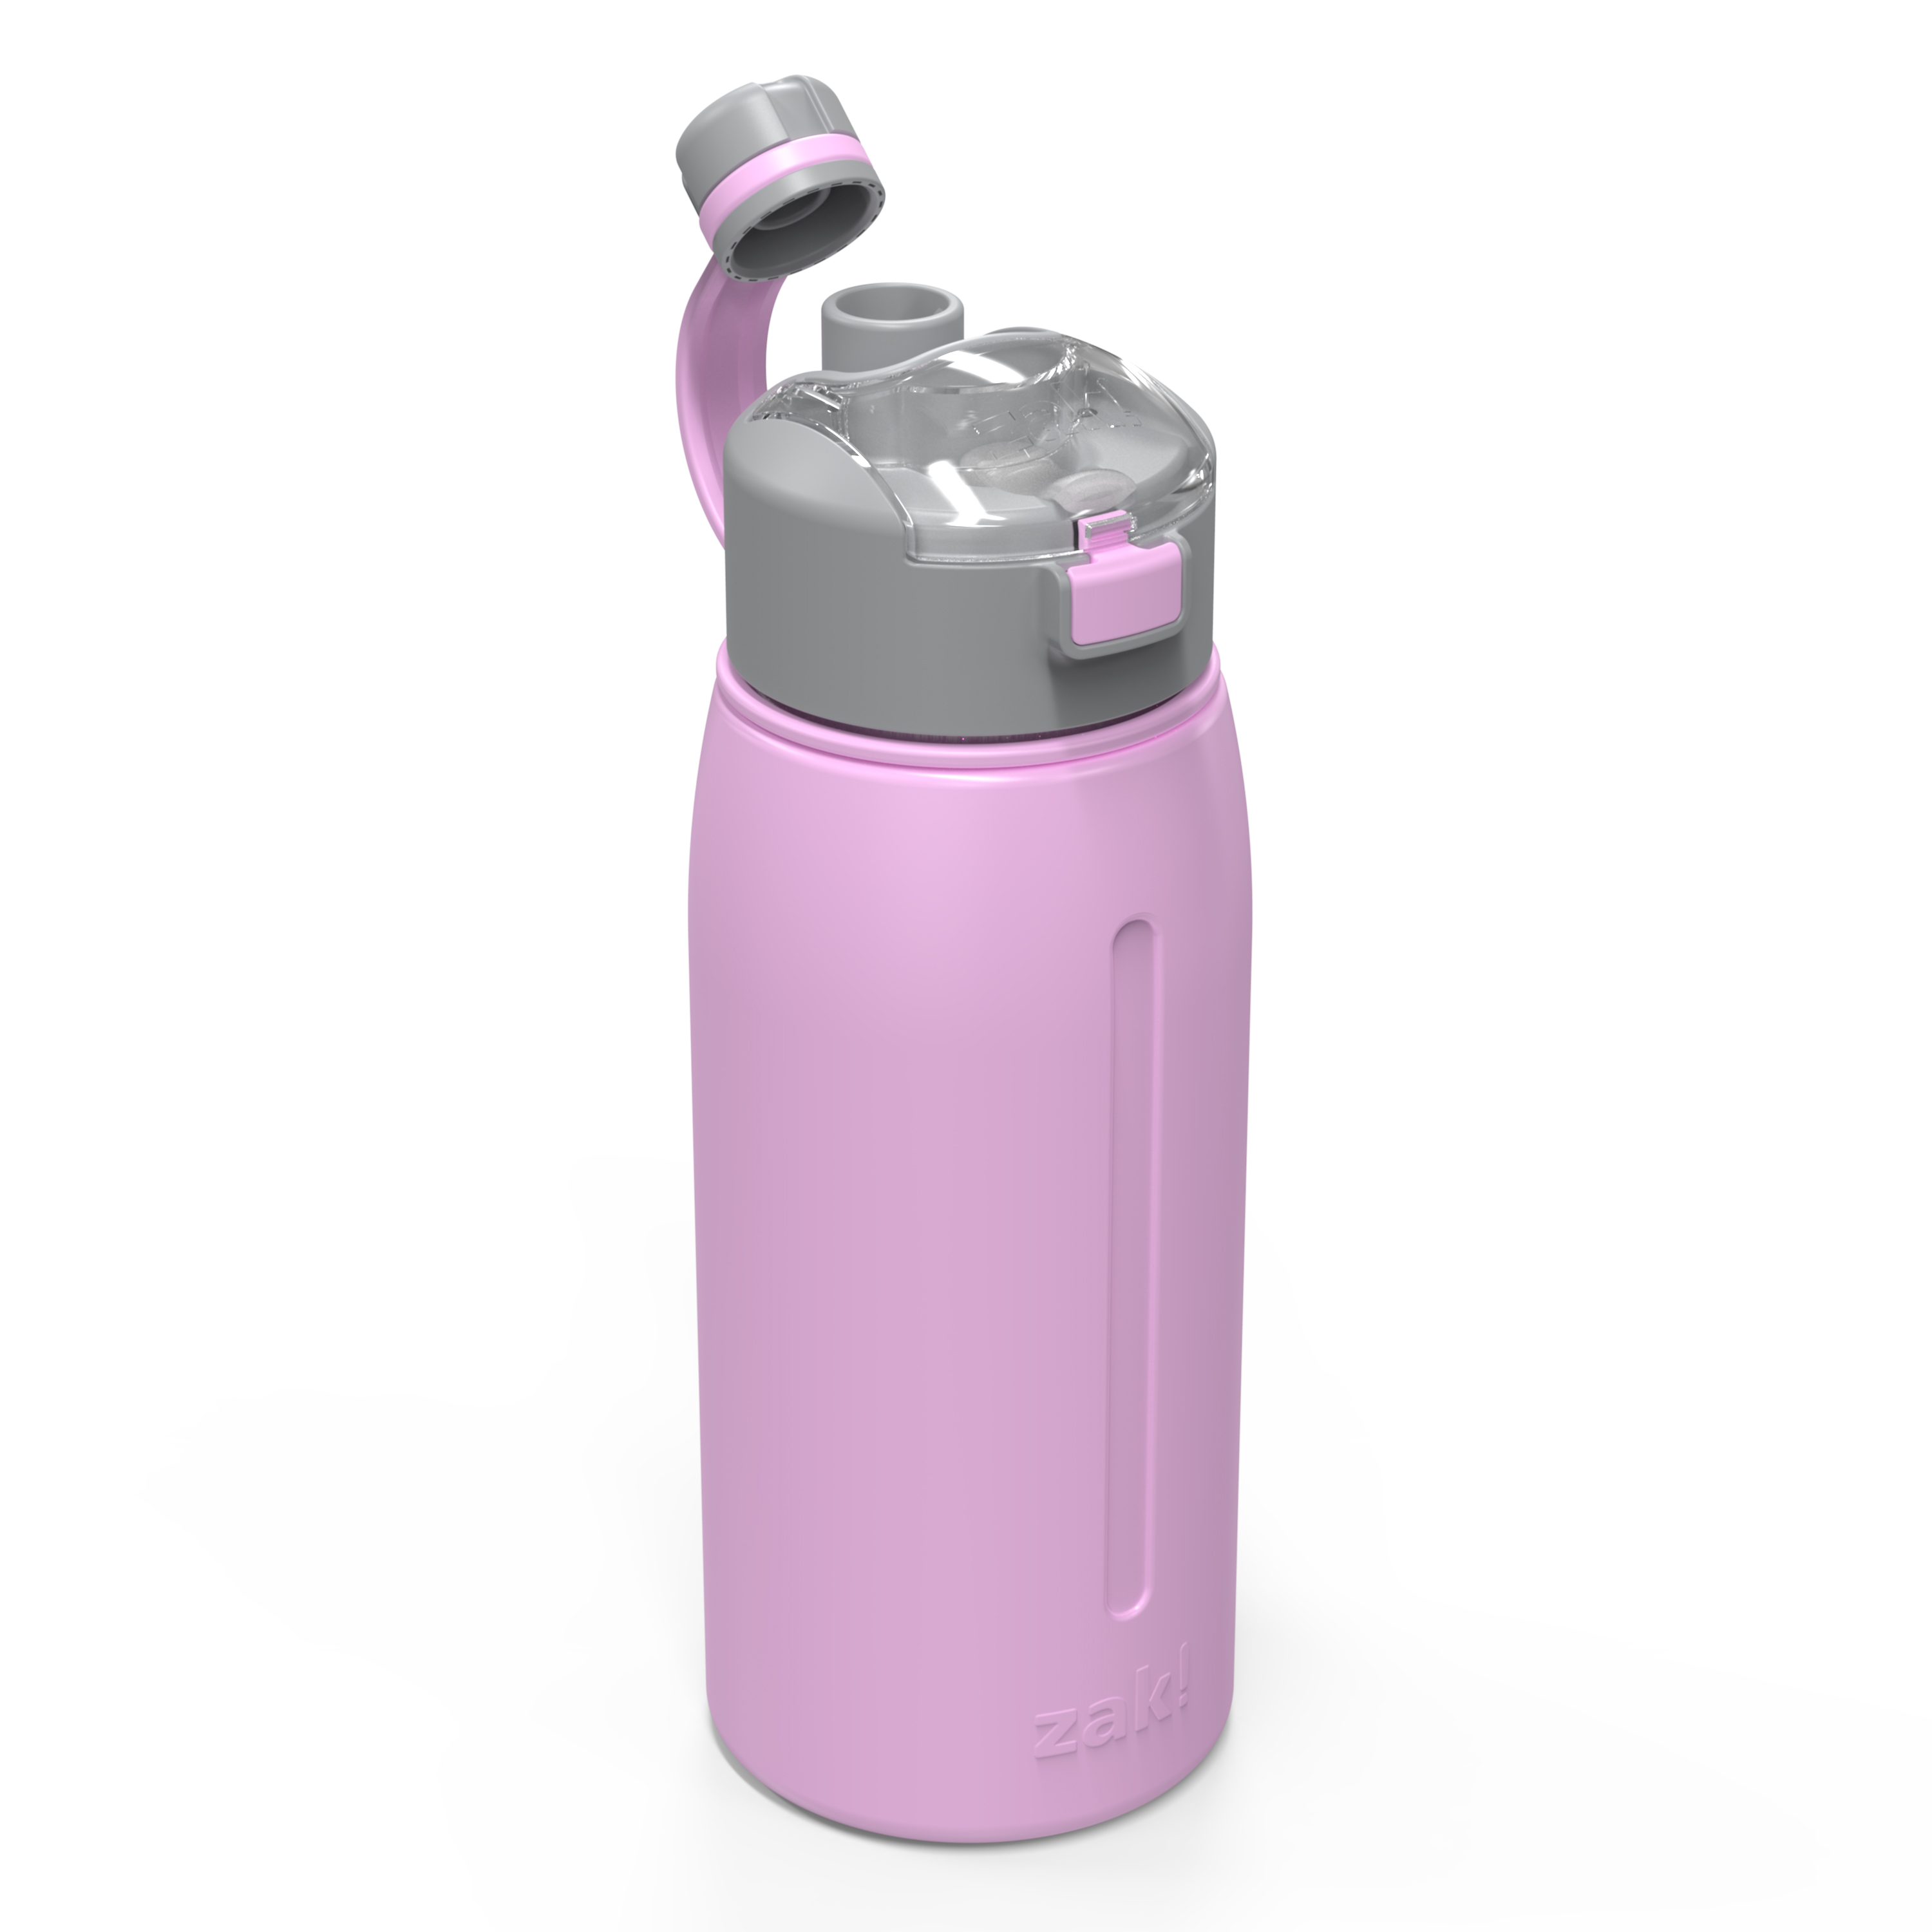 Genesis 24 ounce Vacuum Insulated Stainless Steel Tumbler, Lilac slideshow image 3